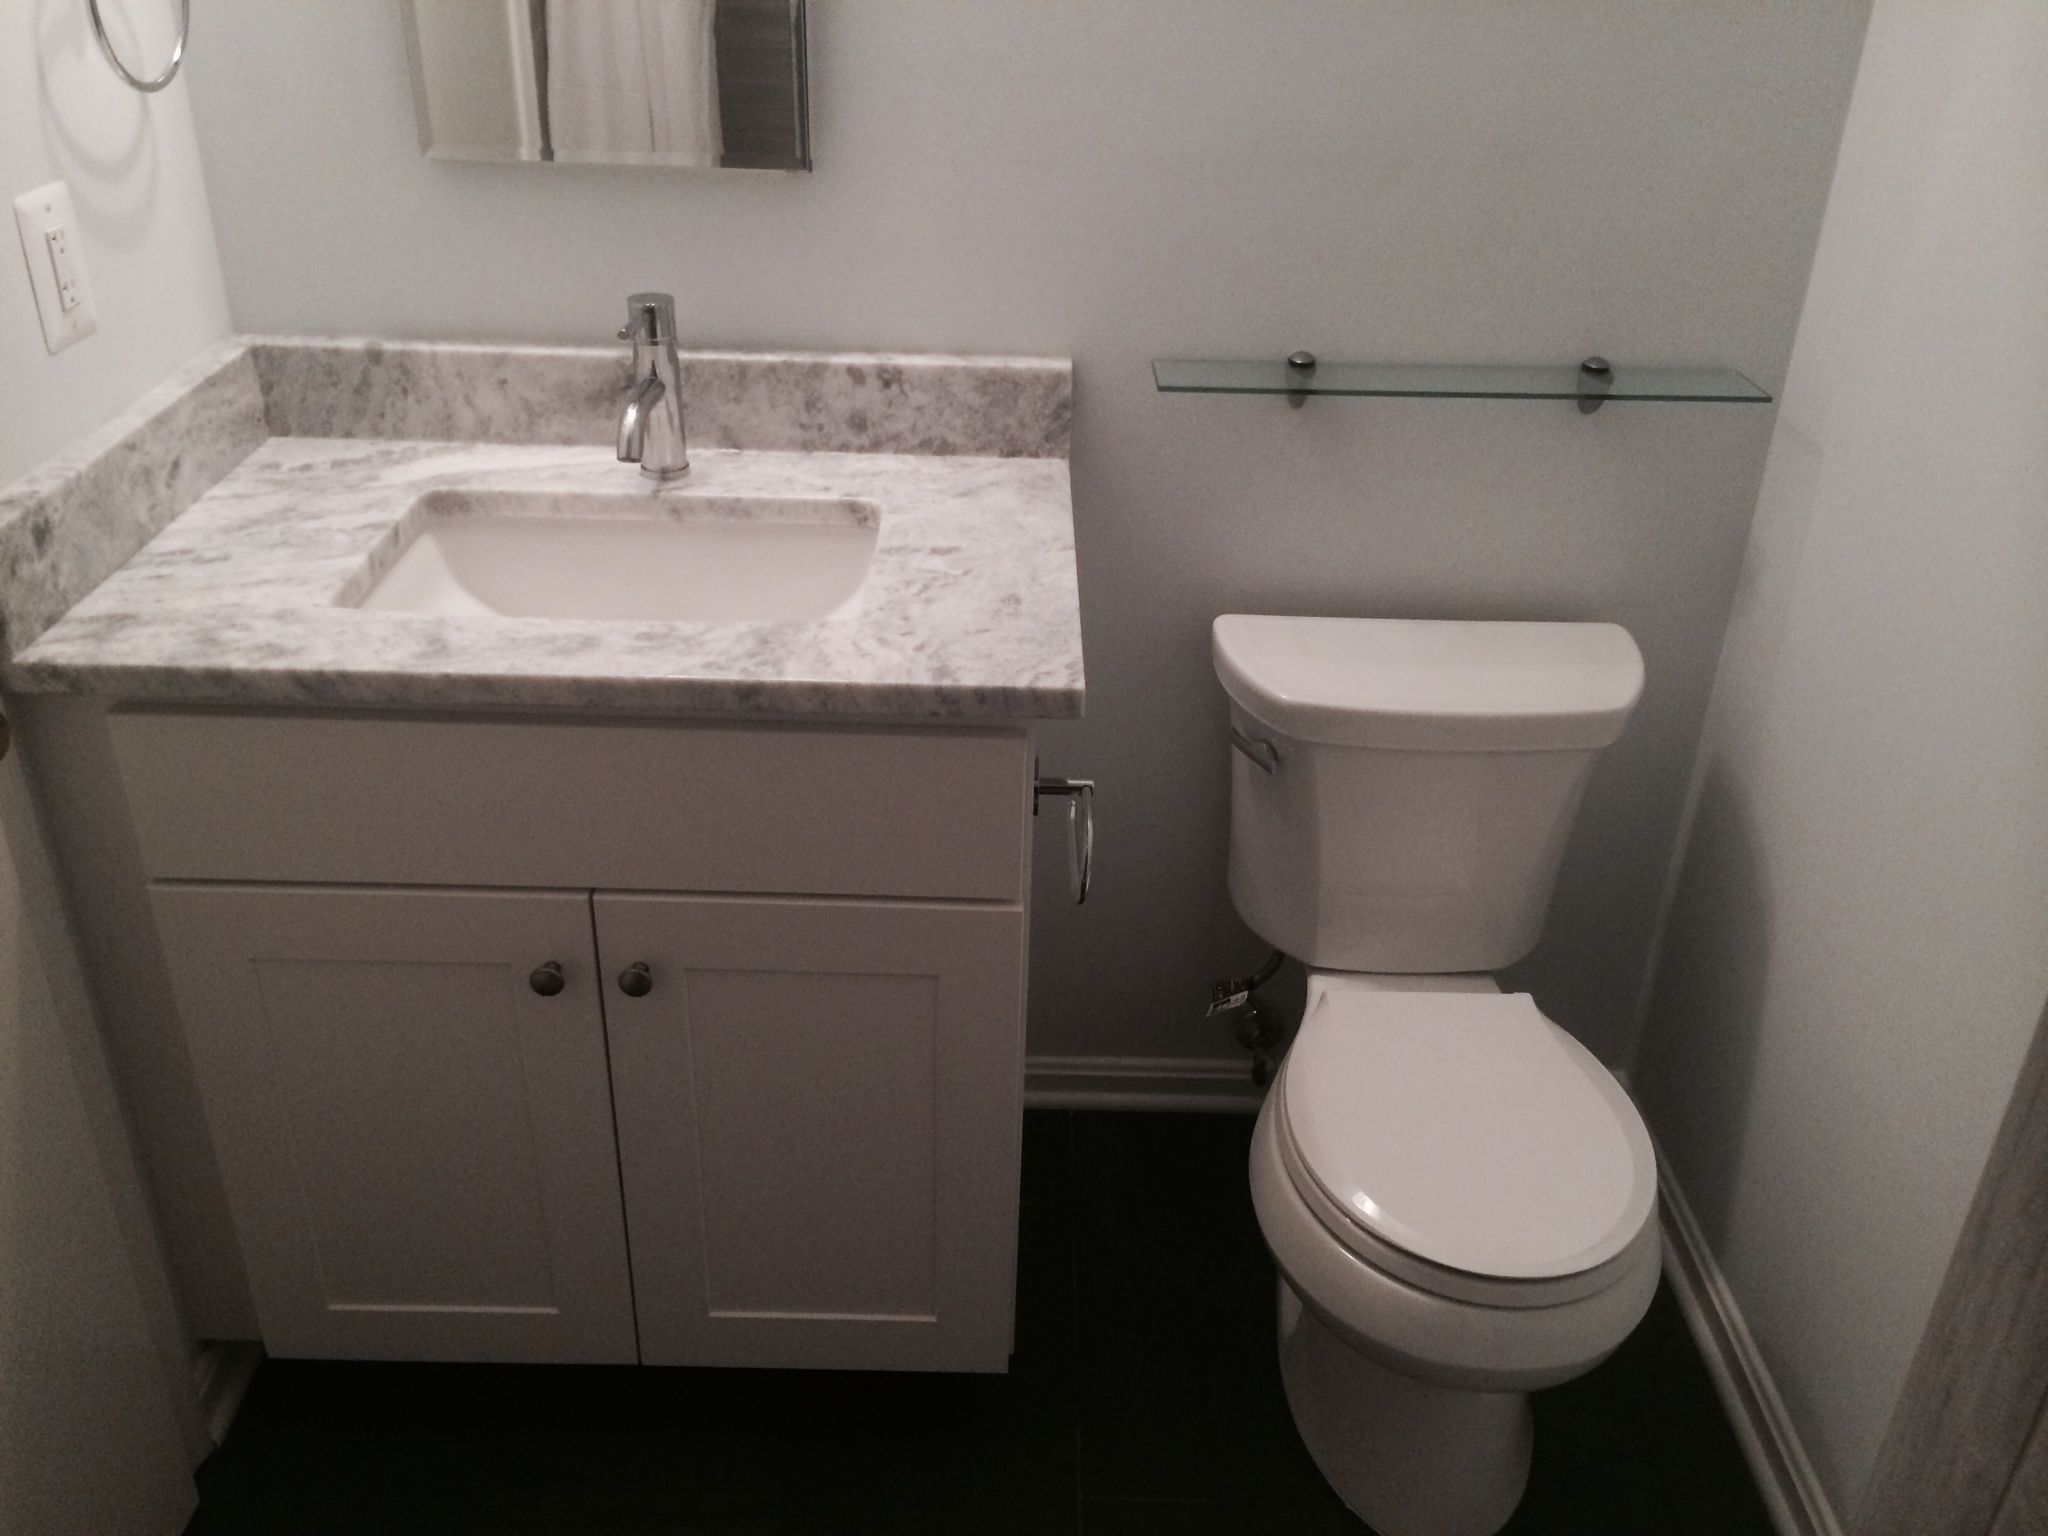 bathroom remodel photos rockville md Small Bathroom Renovations Before and After Bathroom Renovations